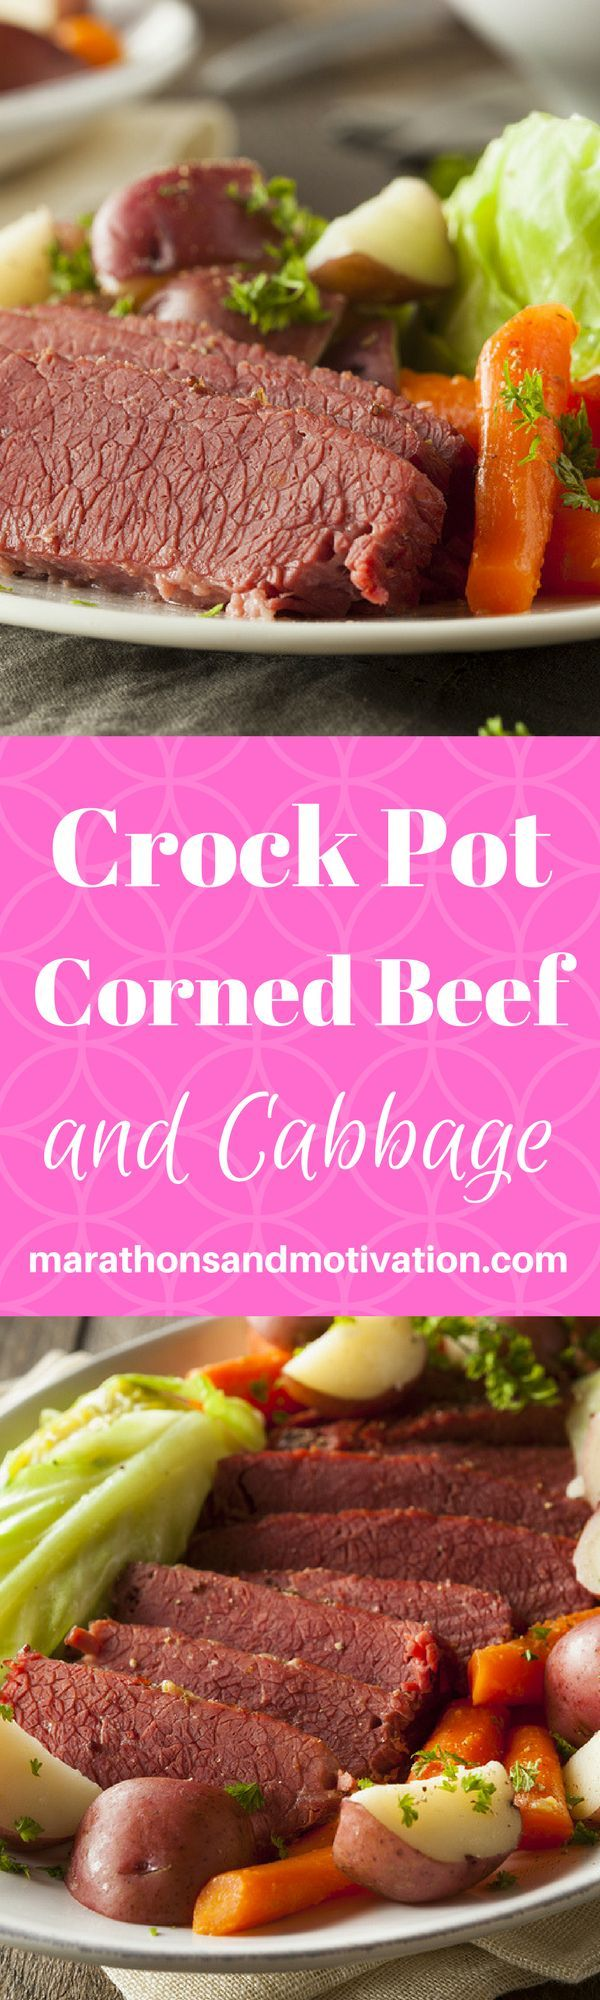 Crock Pot Corned Beef and Cabbage: The BEST Corned Beef and Cabbage recipe for a family meal or St. Patrick's Day Celebration